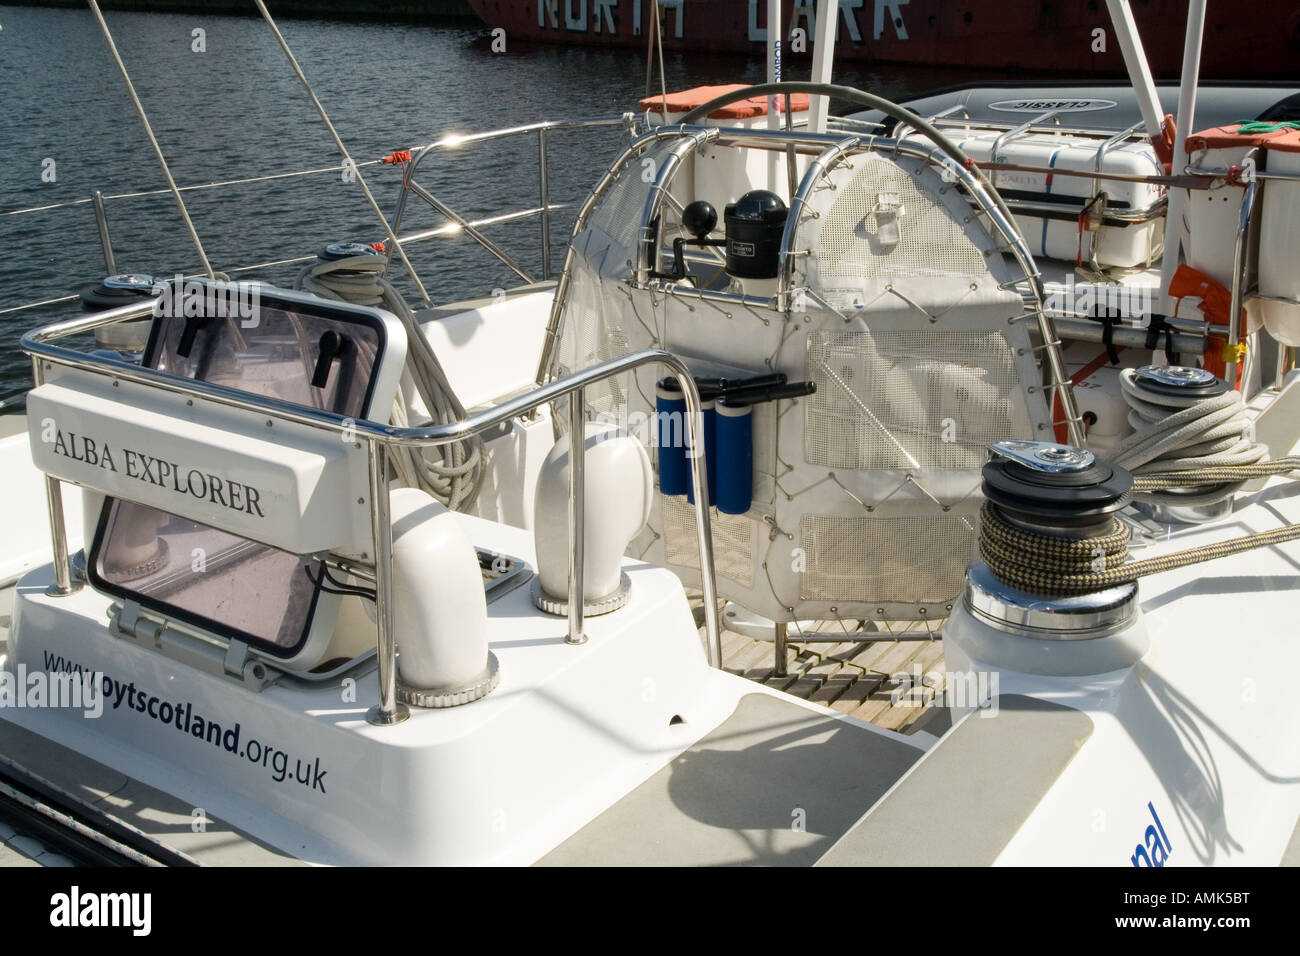 On board the deck of the Alba Explorer yacht berthed at Victoria Docks in Dundee,UK - Stock Image